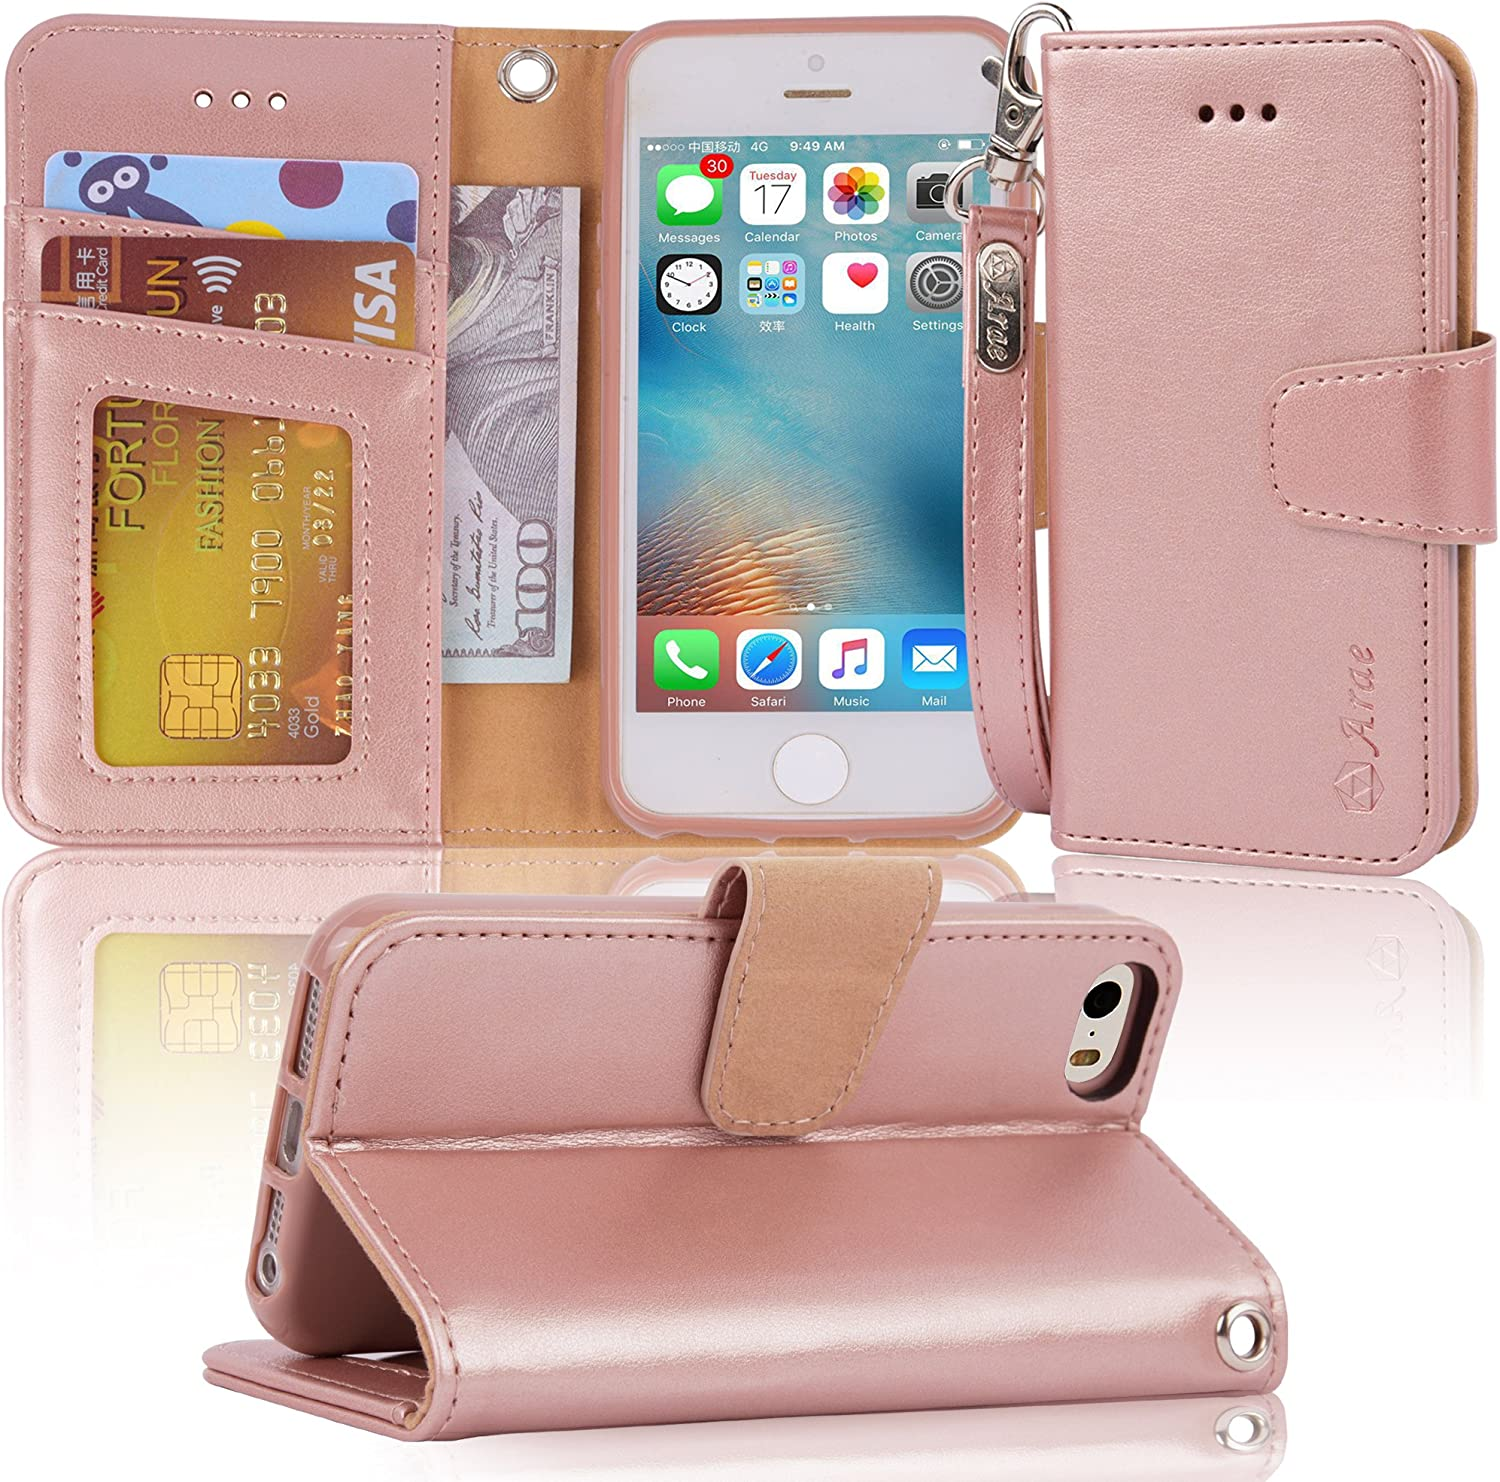 Arae Case for iPhone 5 / iPhone 5s, Premium PU Leather Wallet case [Wrist Strap] Flip Folio [Kickstand Feature] with ID&Credit Card Pockets - Rosegold